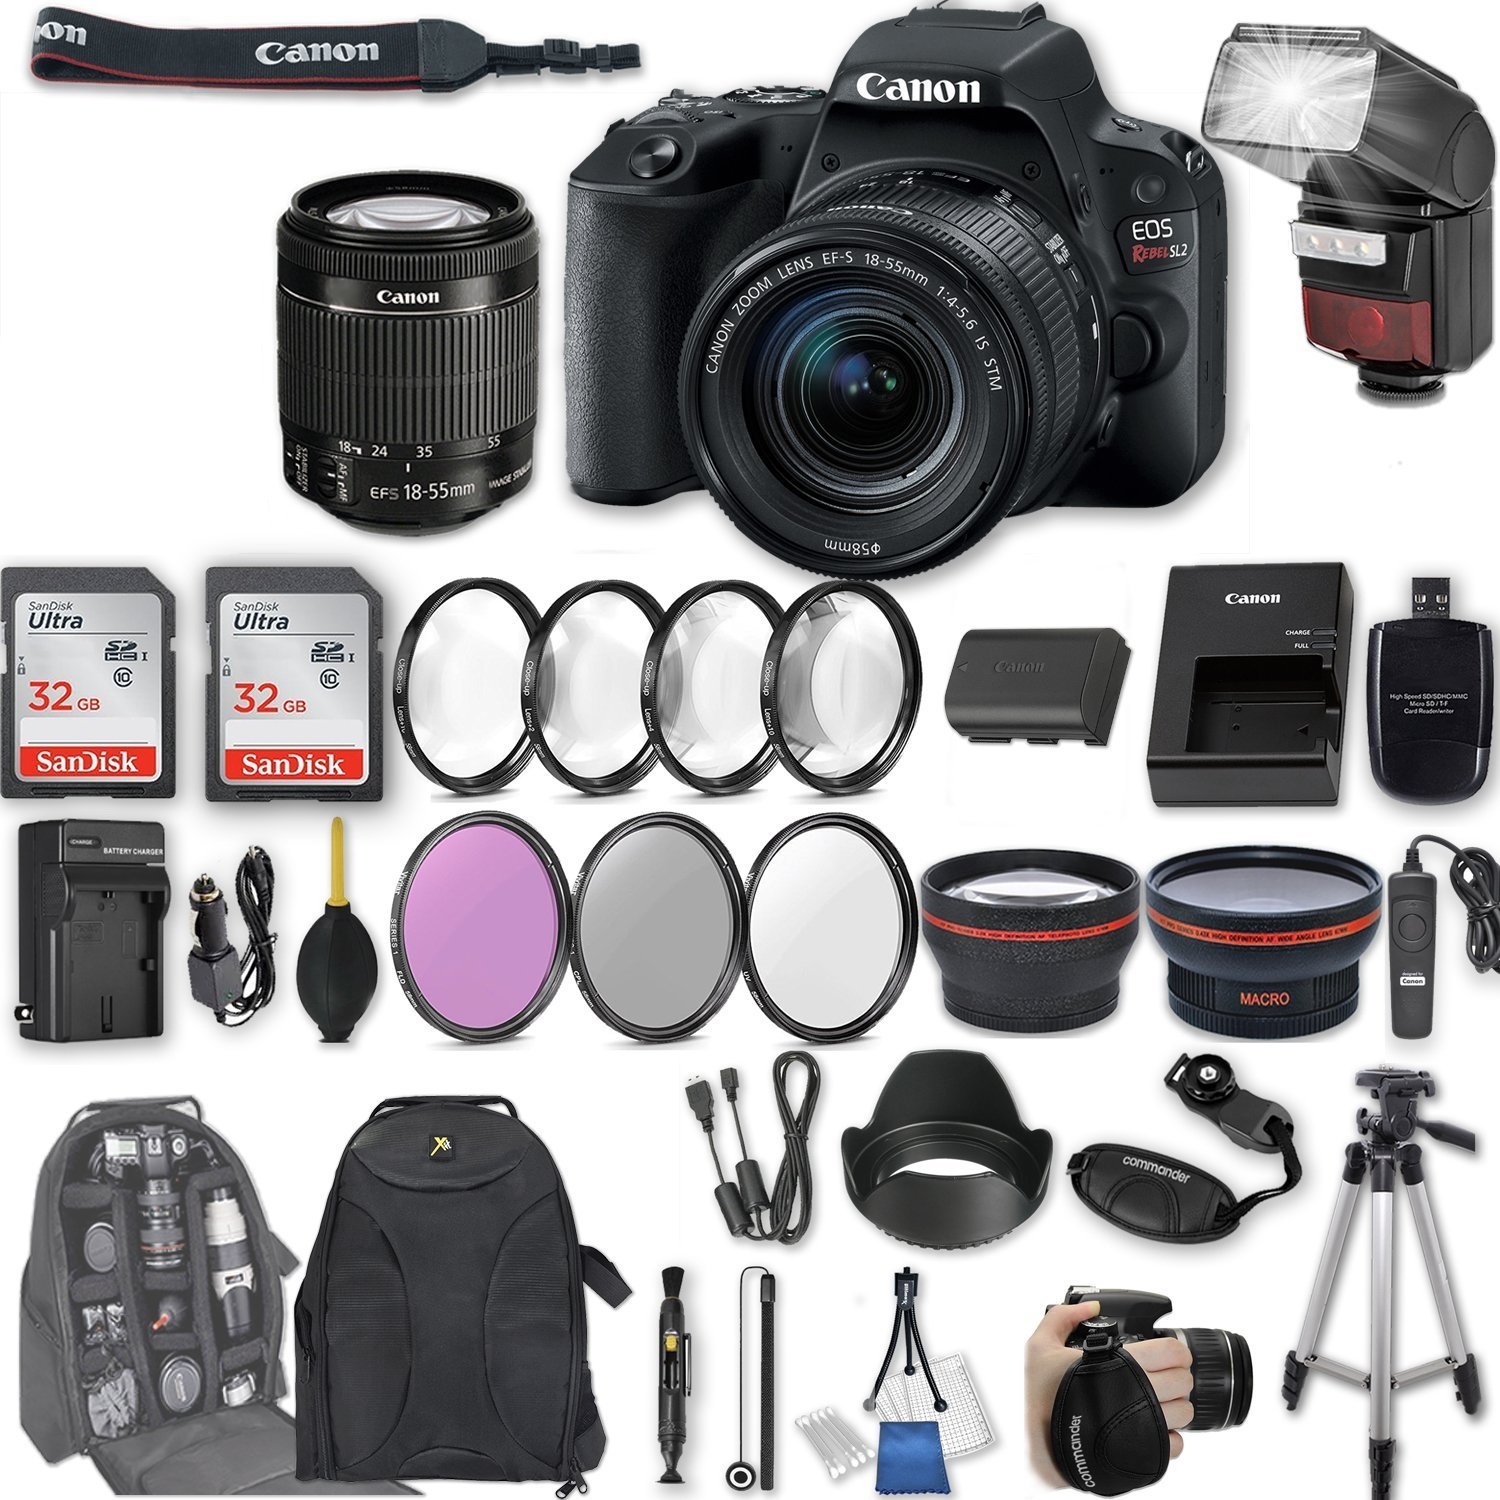 Canon EOS Rebel SL2 DSLR Camera with EF-S 18-55mm f/4-5.6 IS STM Lens + 2Pcs 32GB Sandisk SD Memory + Automatic Flash + Filter & Macro Kits + Backpack + 50'' Tripod + More by Canon